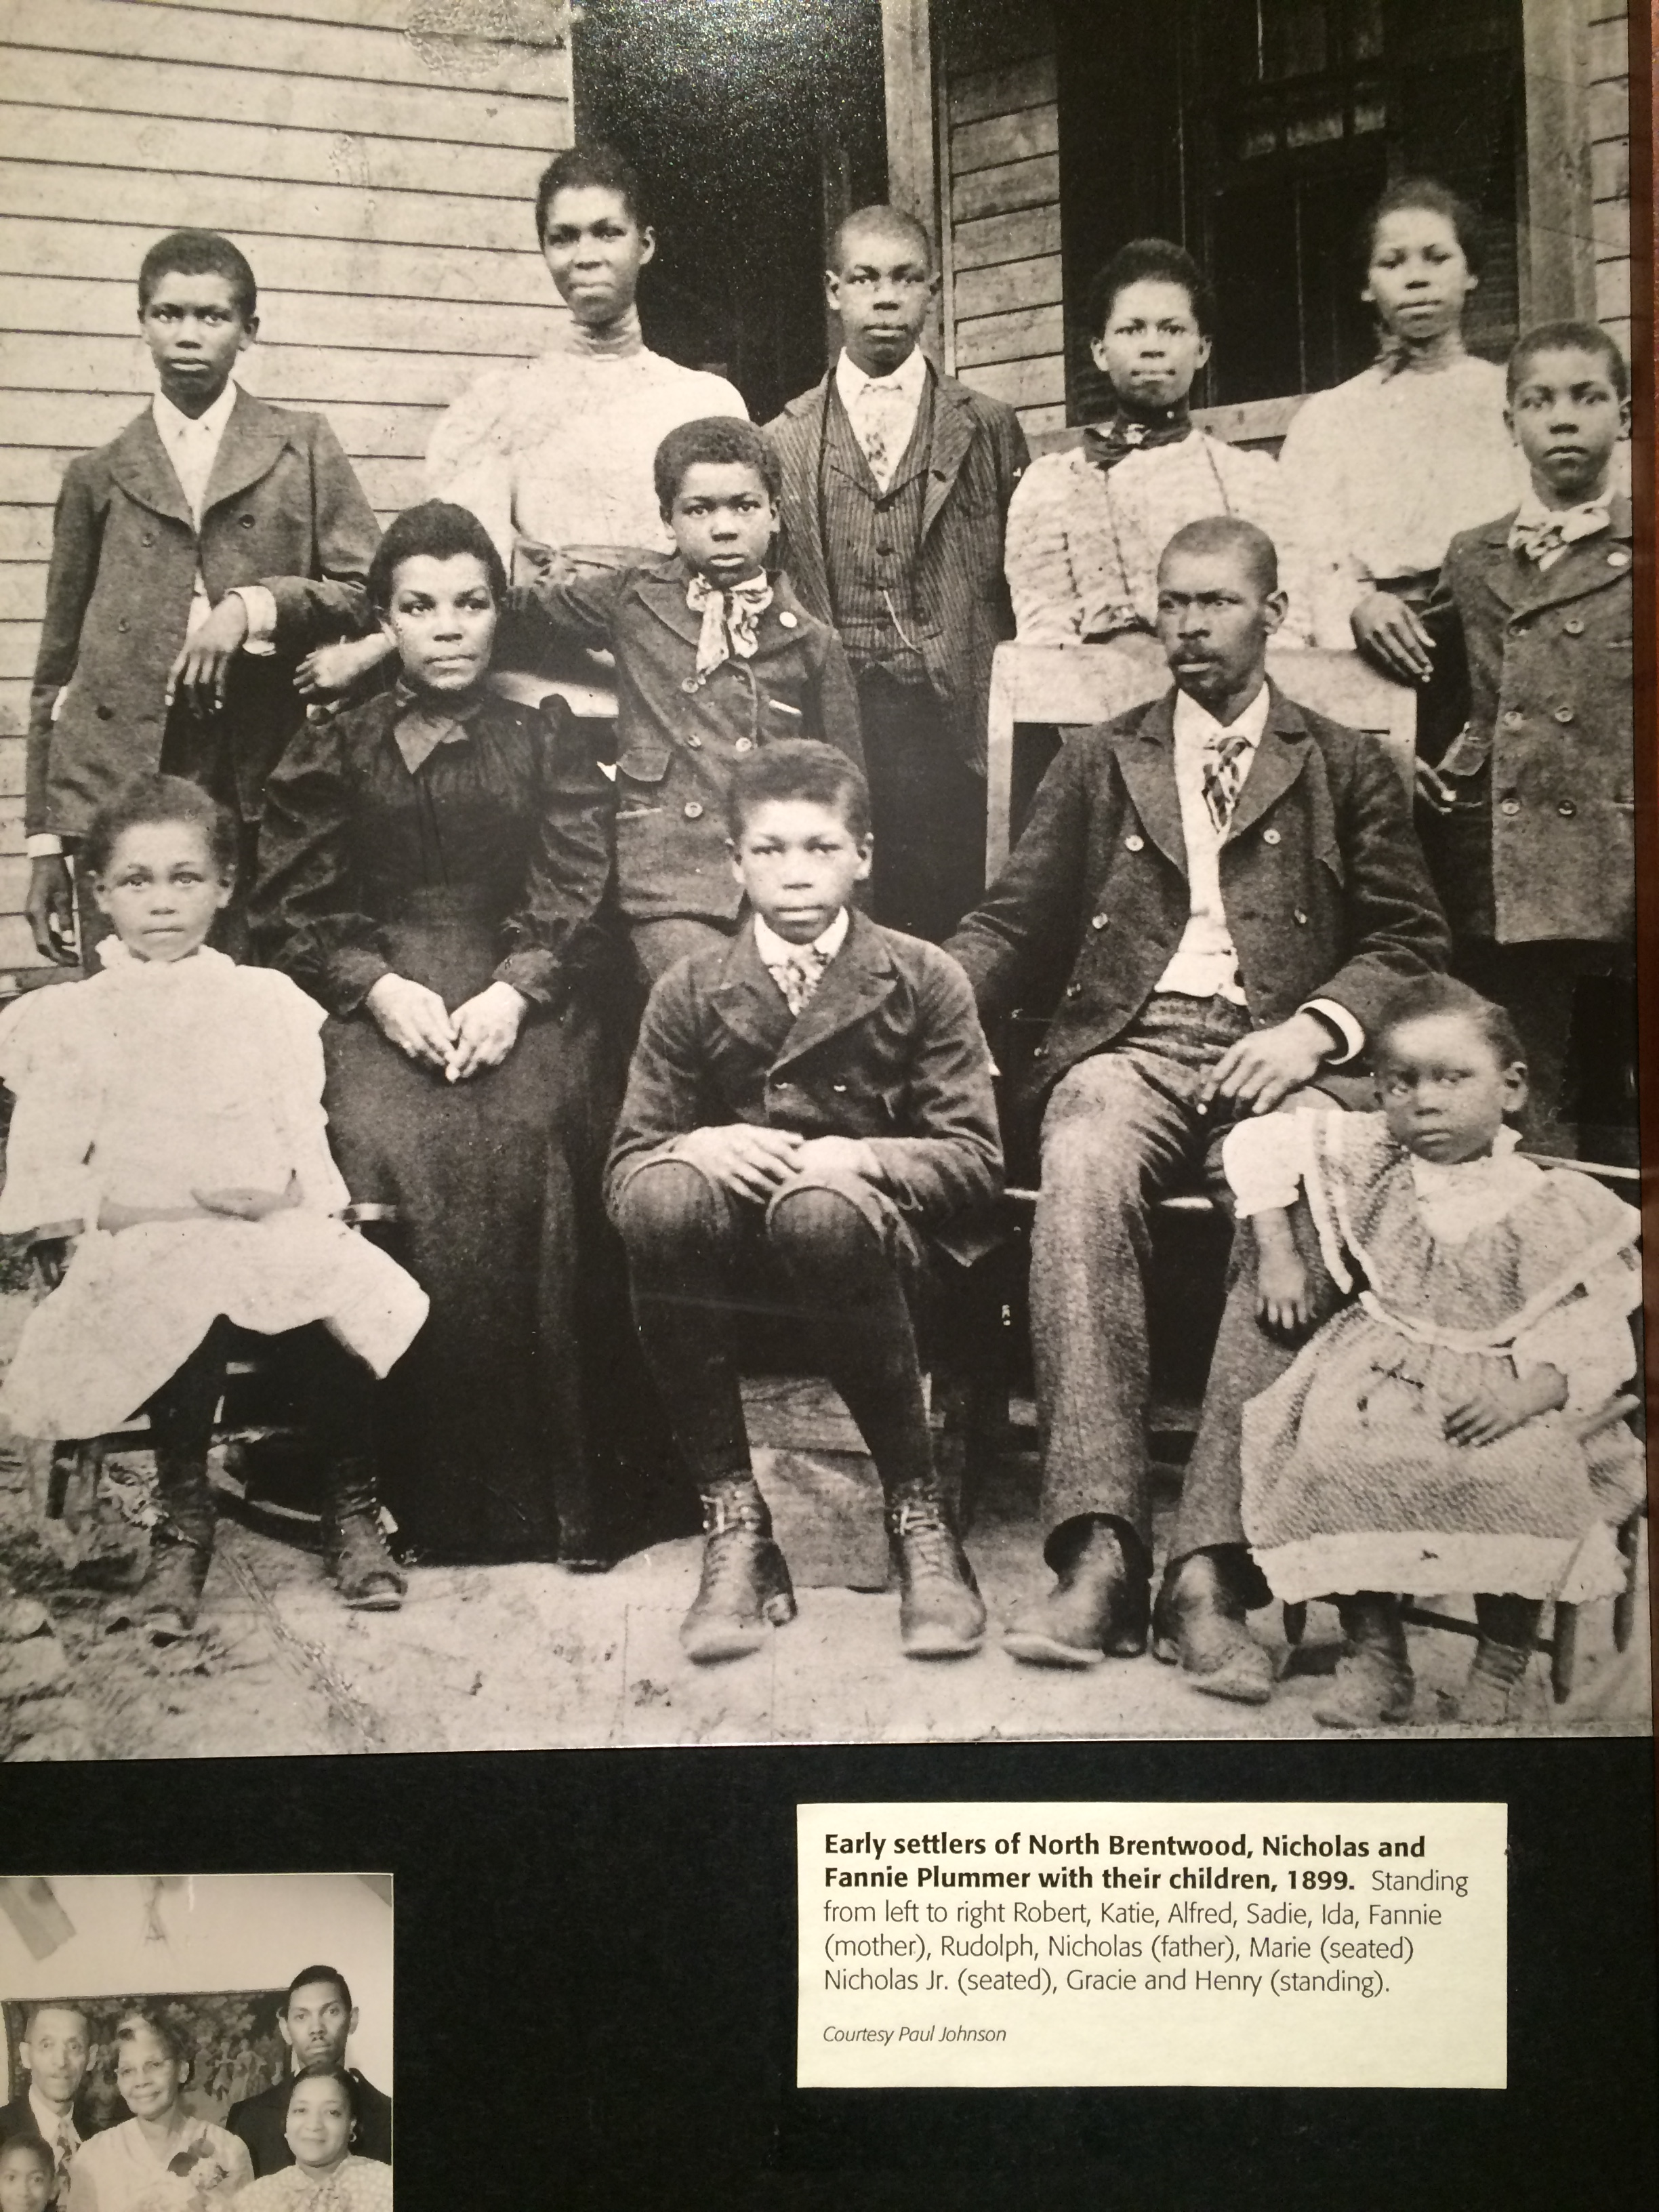 Roots of Prince Georges County: Celebrating Black History